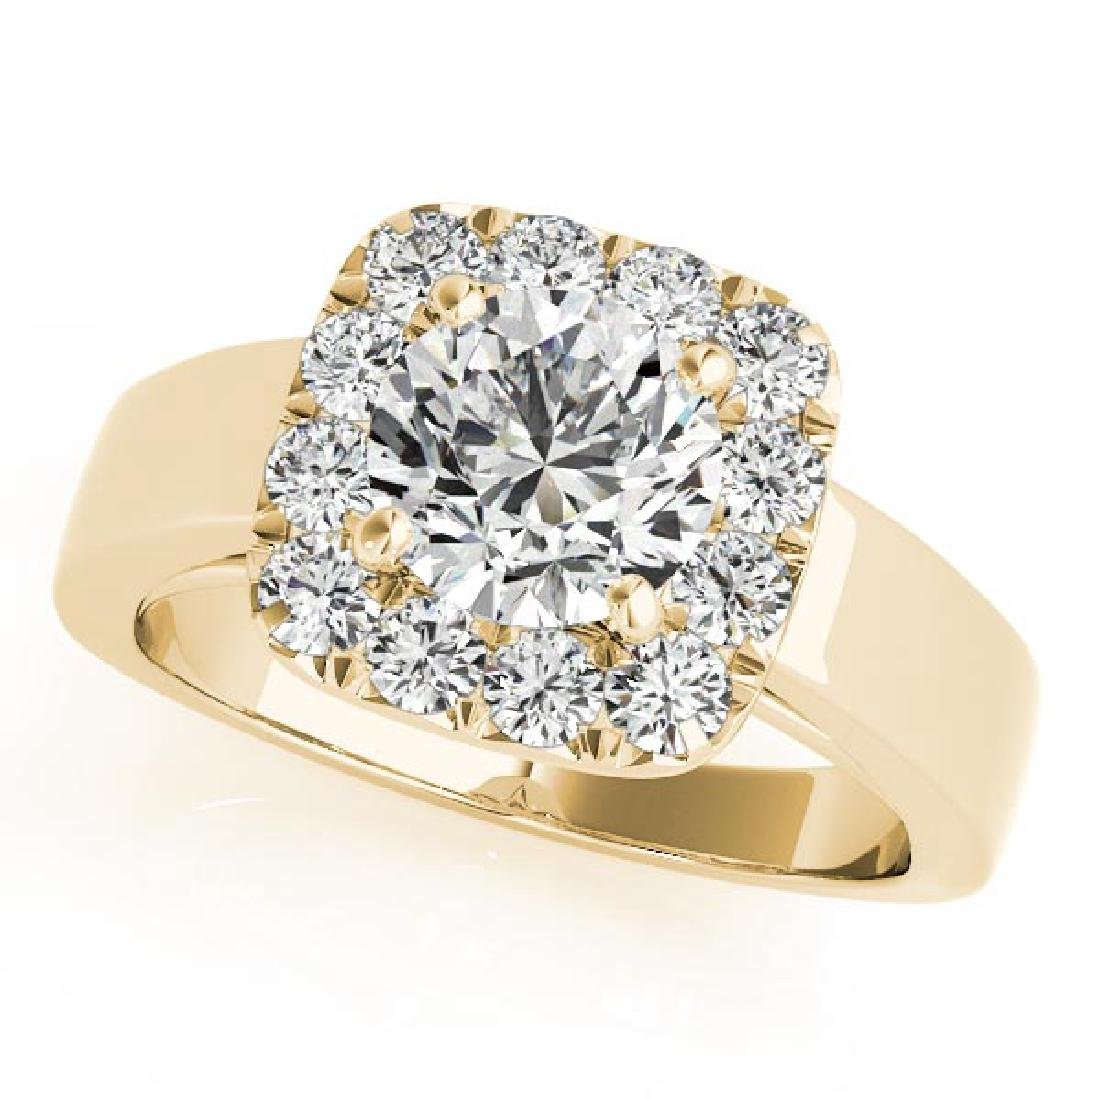 CERTIFIED 18K YELLOW GOLD 1.08 CT G-H/VS-SI1 DIAMOND HA